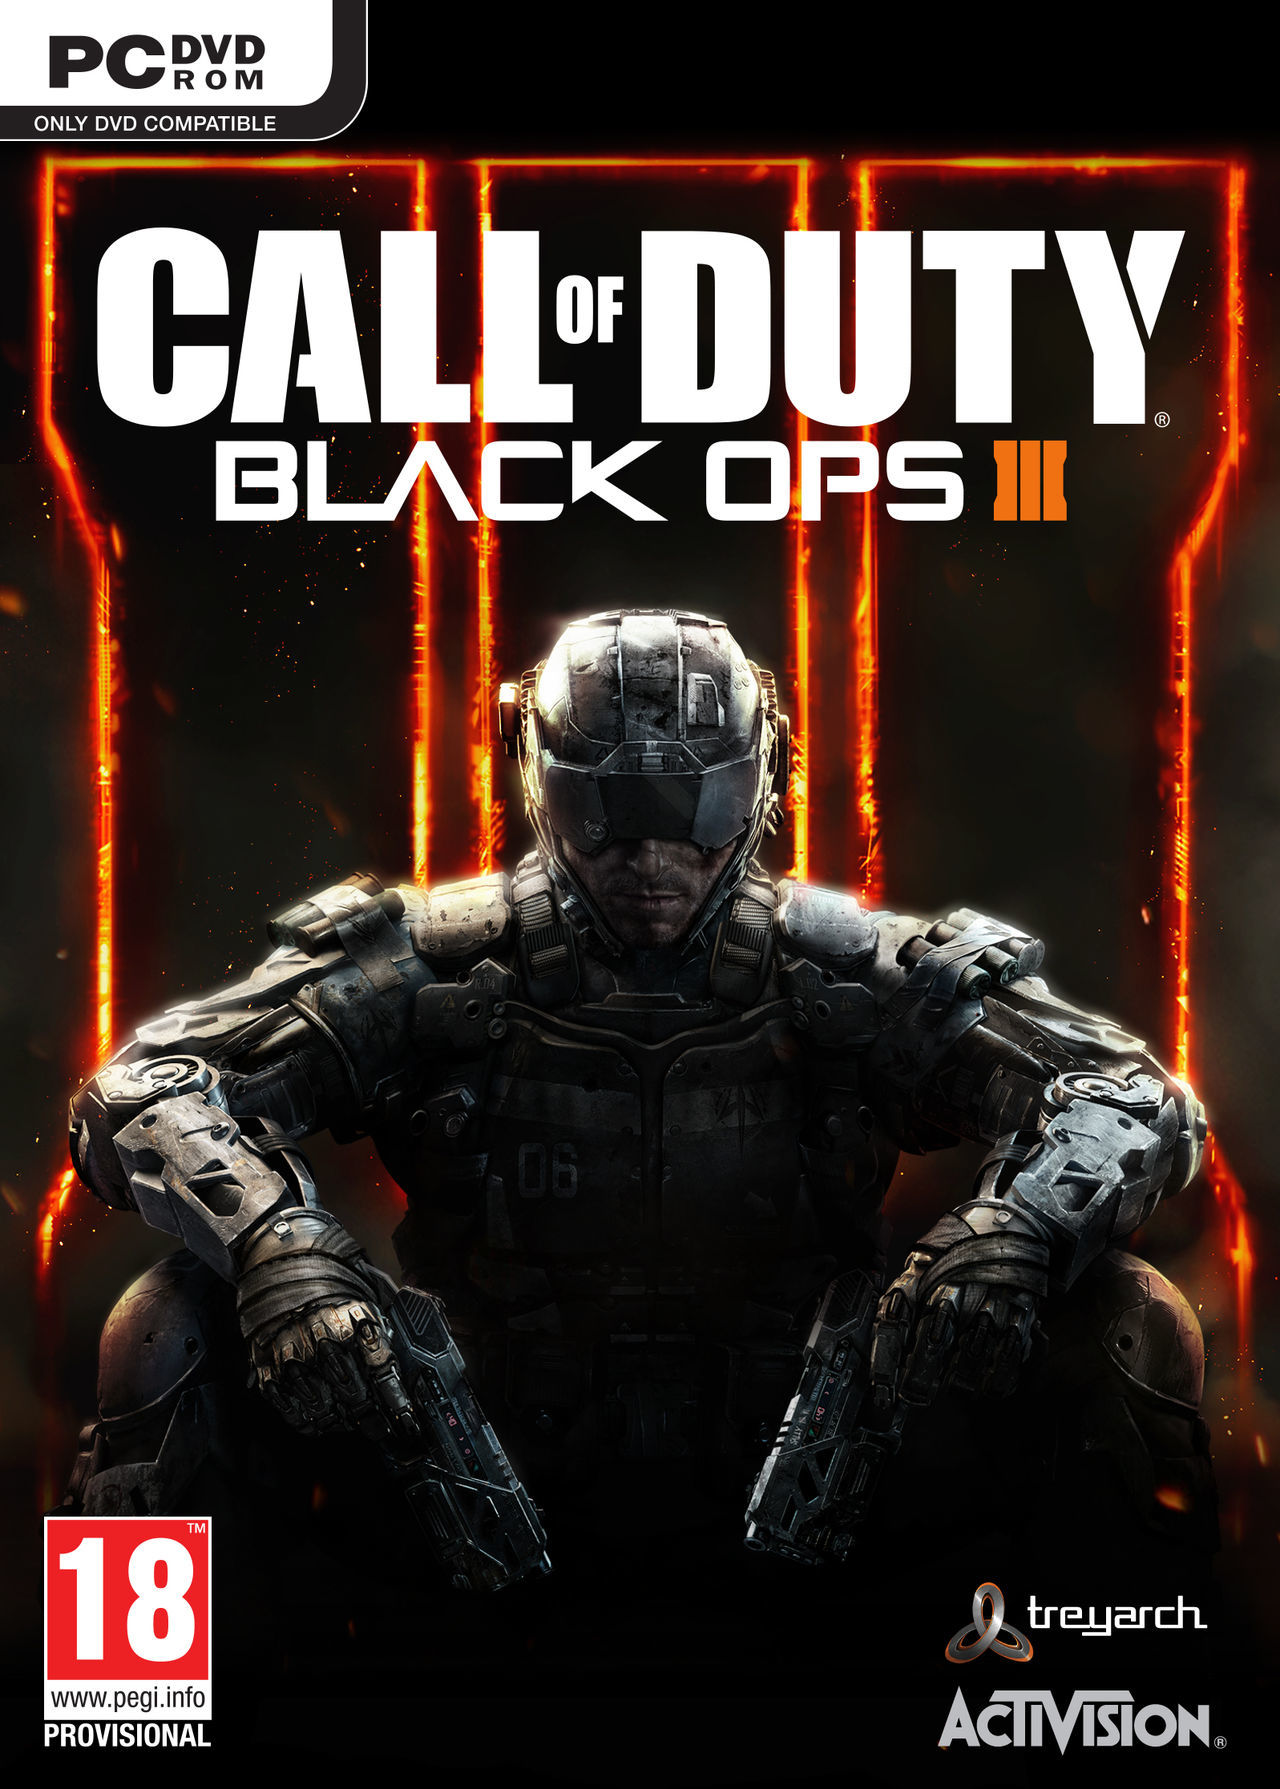 Imagen 8 de Call of Duty: Black Ops III para Ordenador